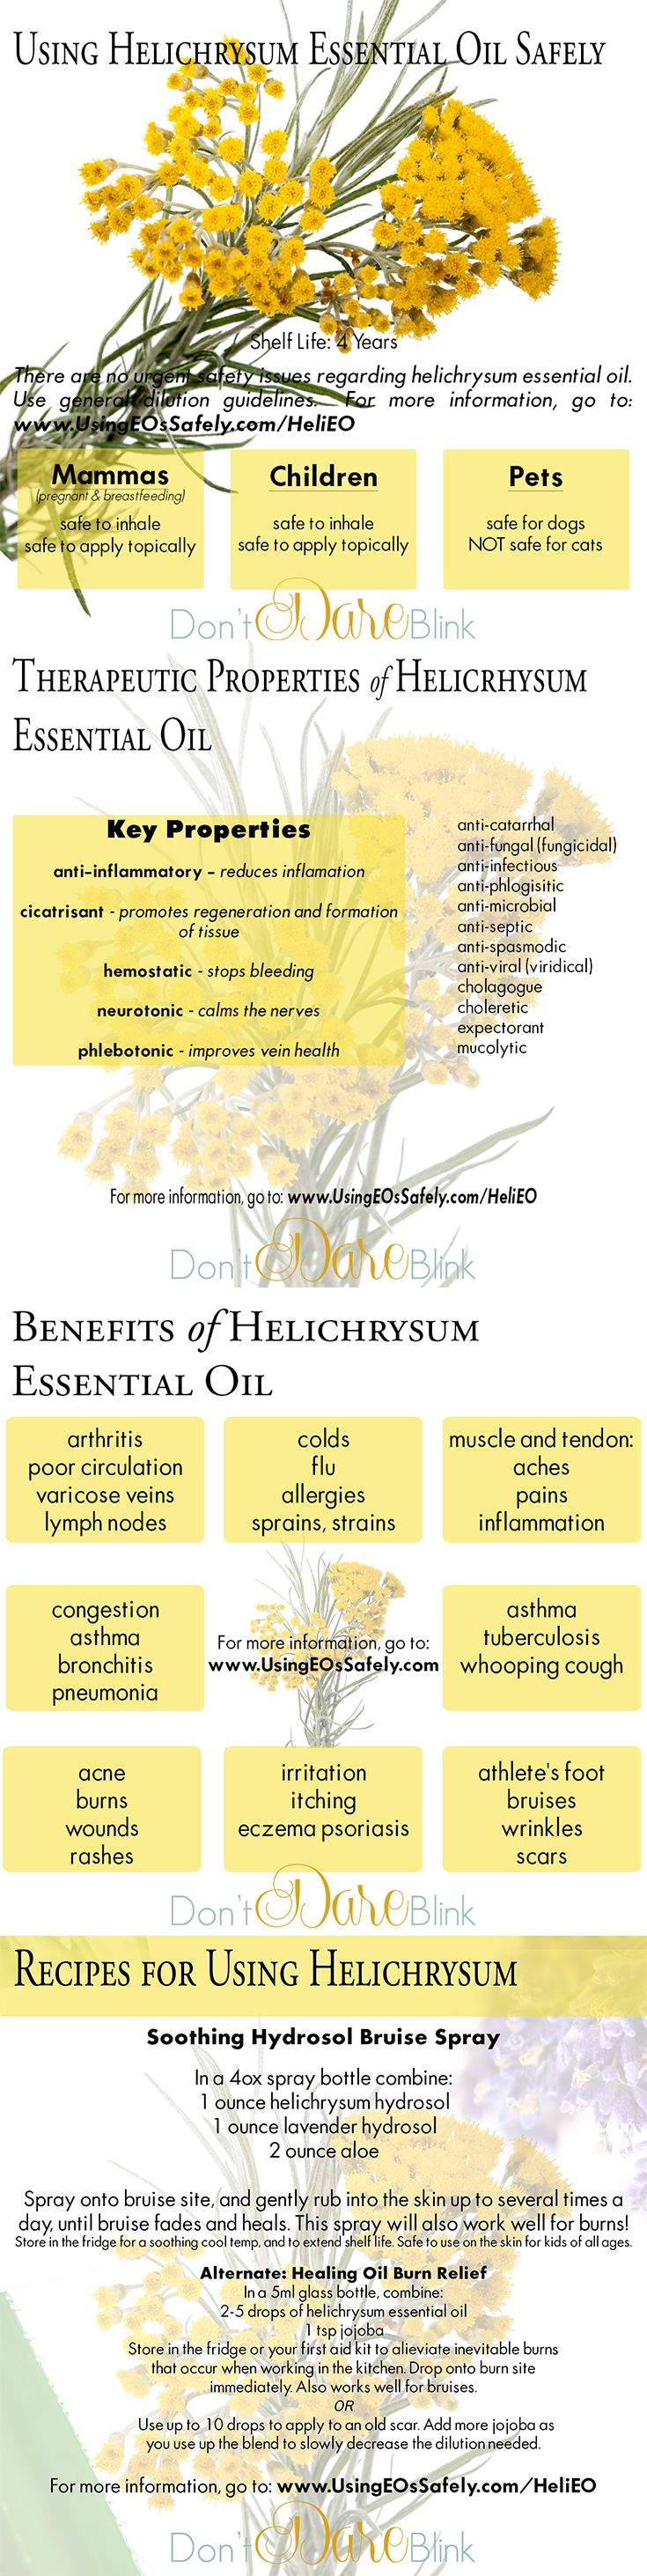 The highlights of helichrysum essential oil! Join the free mini courses to learn about a new oil each week. For more information about the courses, and using this essential oil safely, visit: http://UsingEOsSafely.com/HeliEO